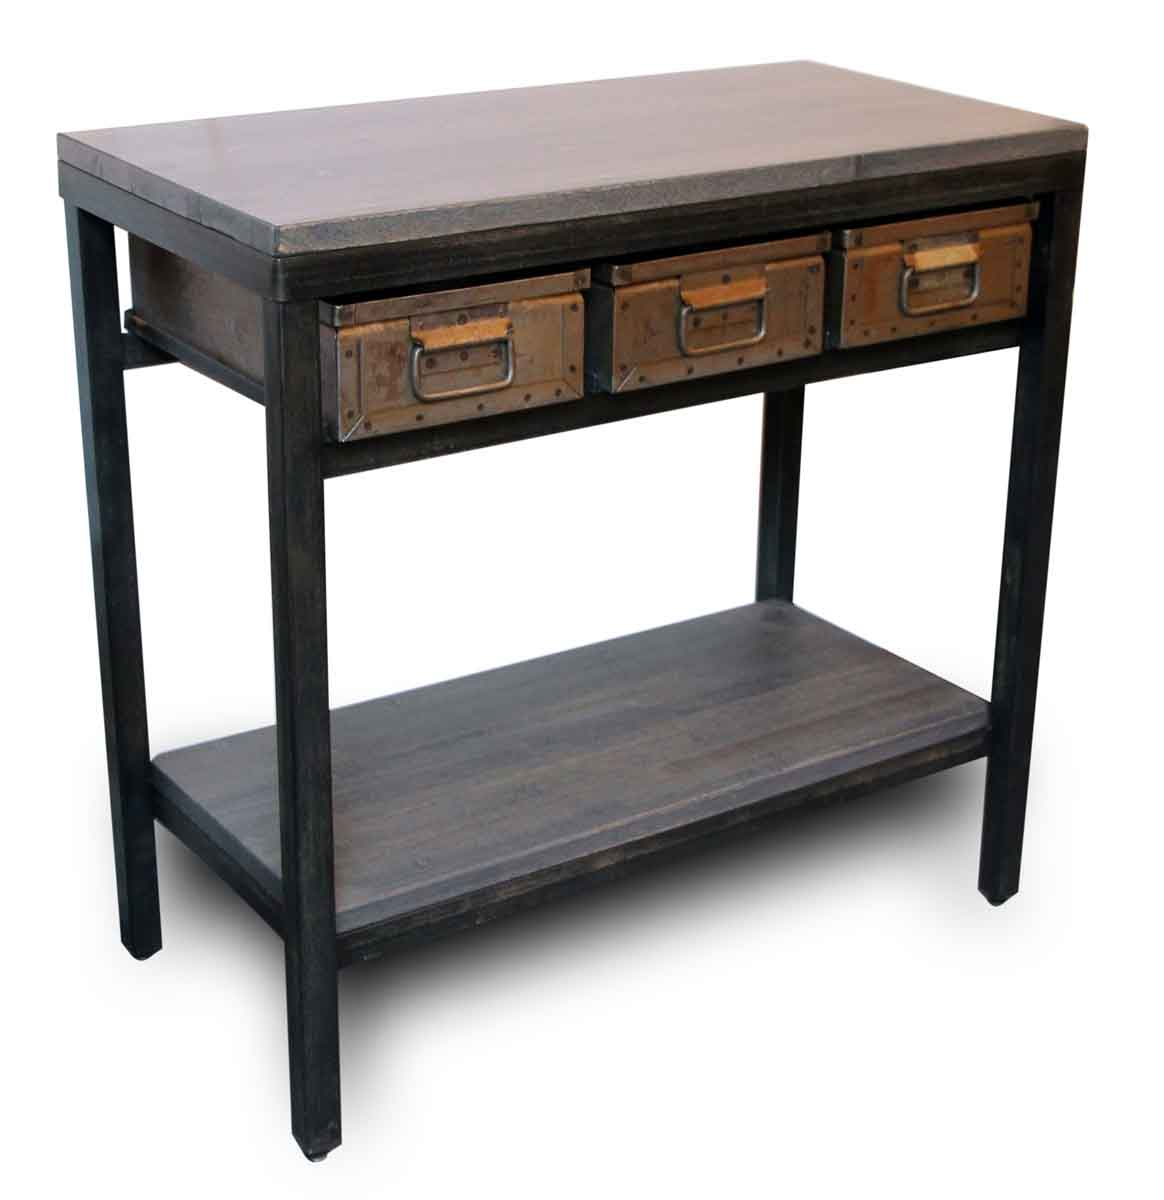 Console With Drawers Console Table With Three Metal Drawers Olde Good Things